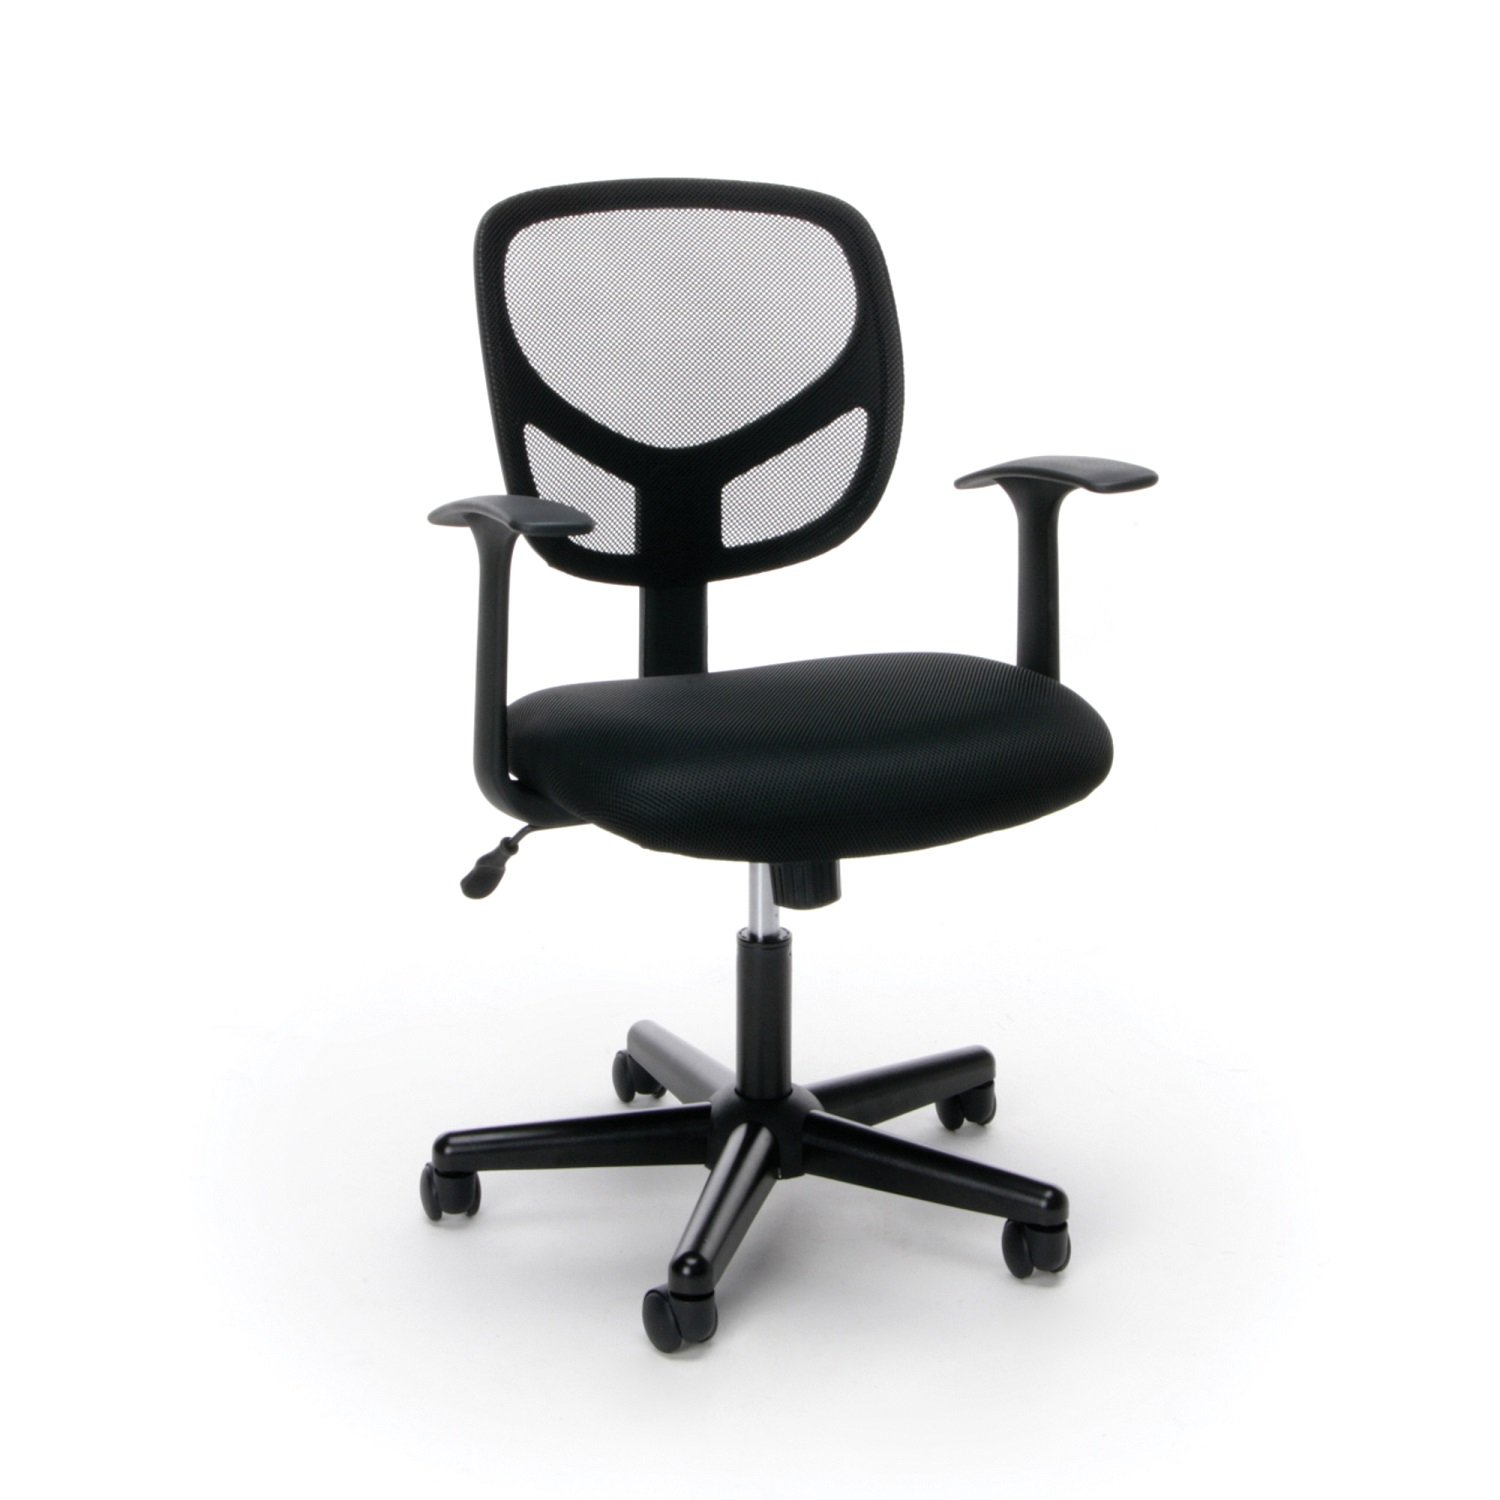 Essentials Swivel Mid Back Mesh Task Chair with Arms Ergonomic puter fice Chair ESS 3001 Amazon Industrial & Scientific